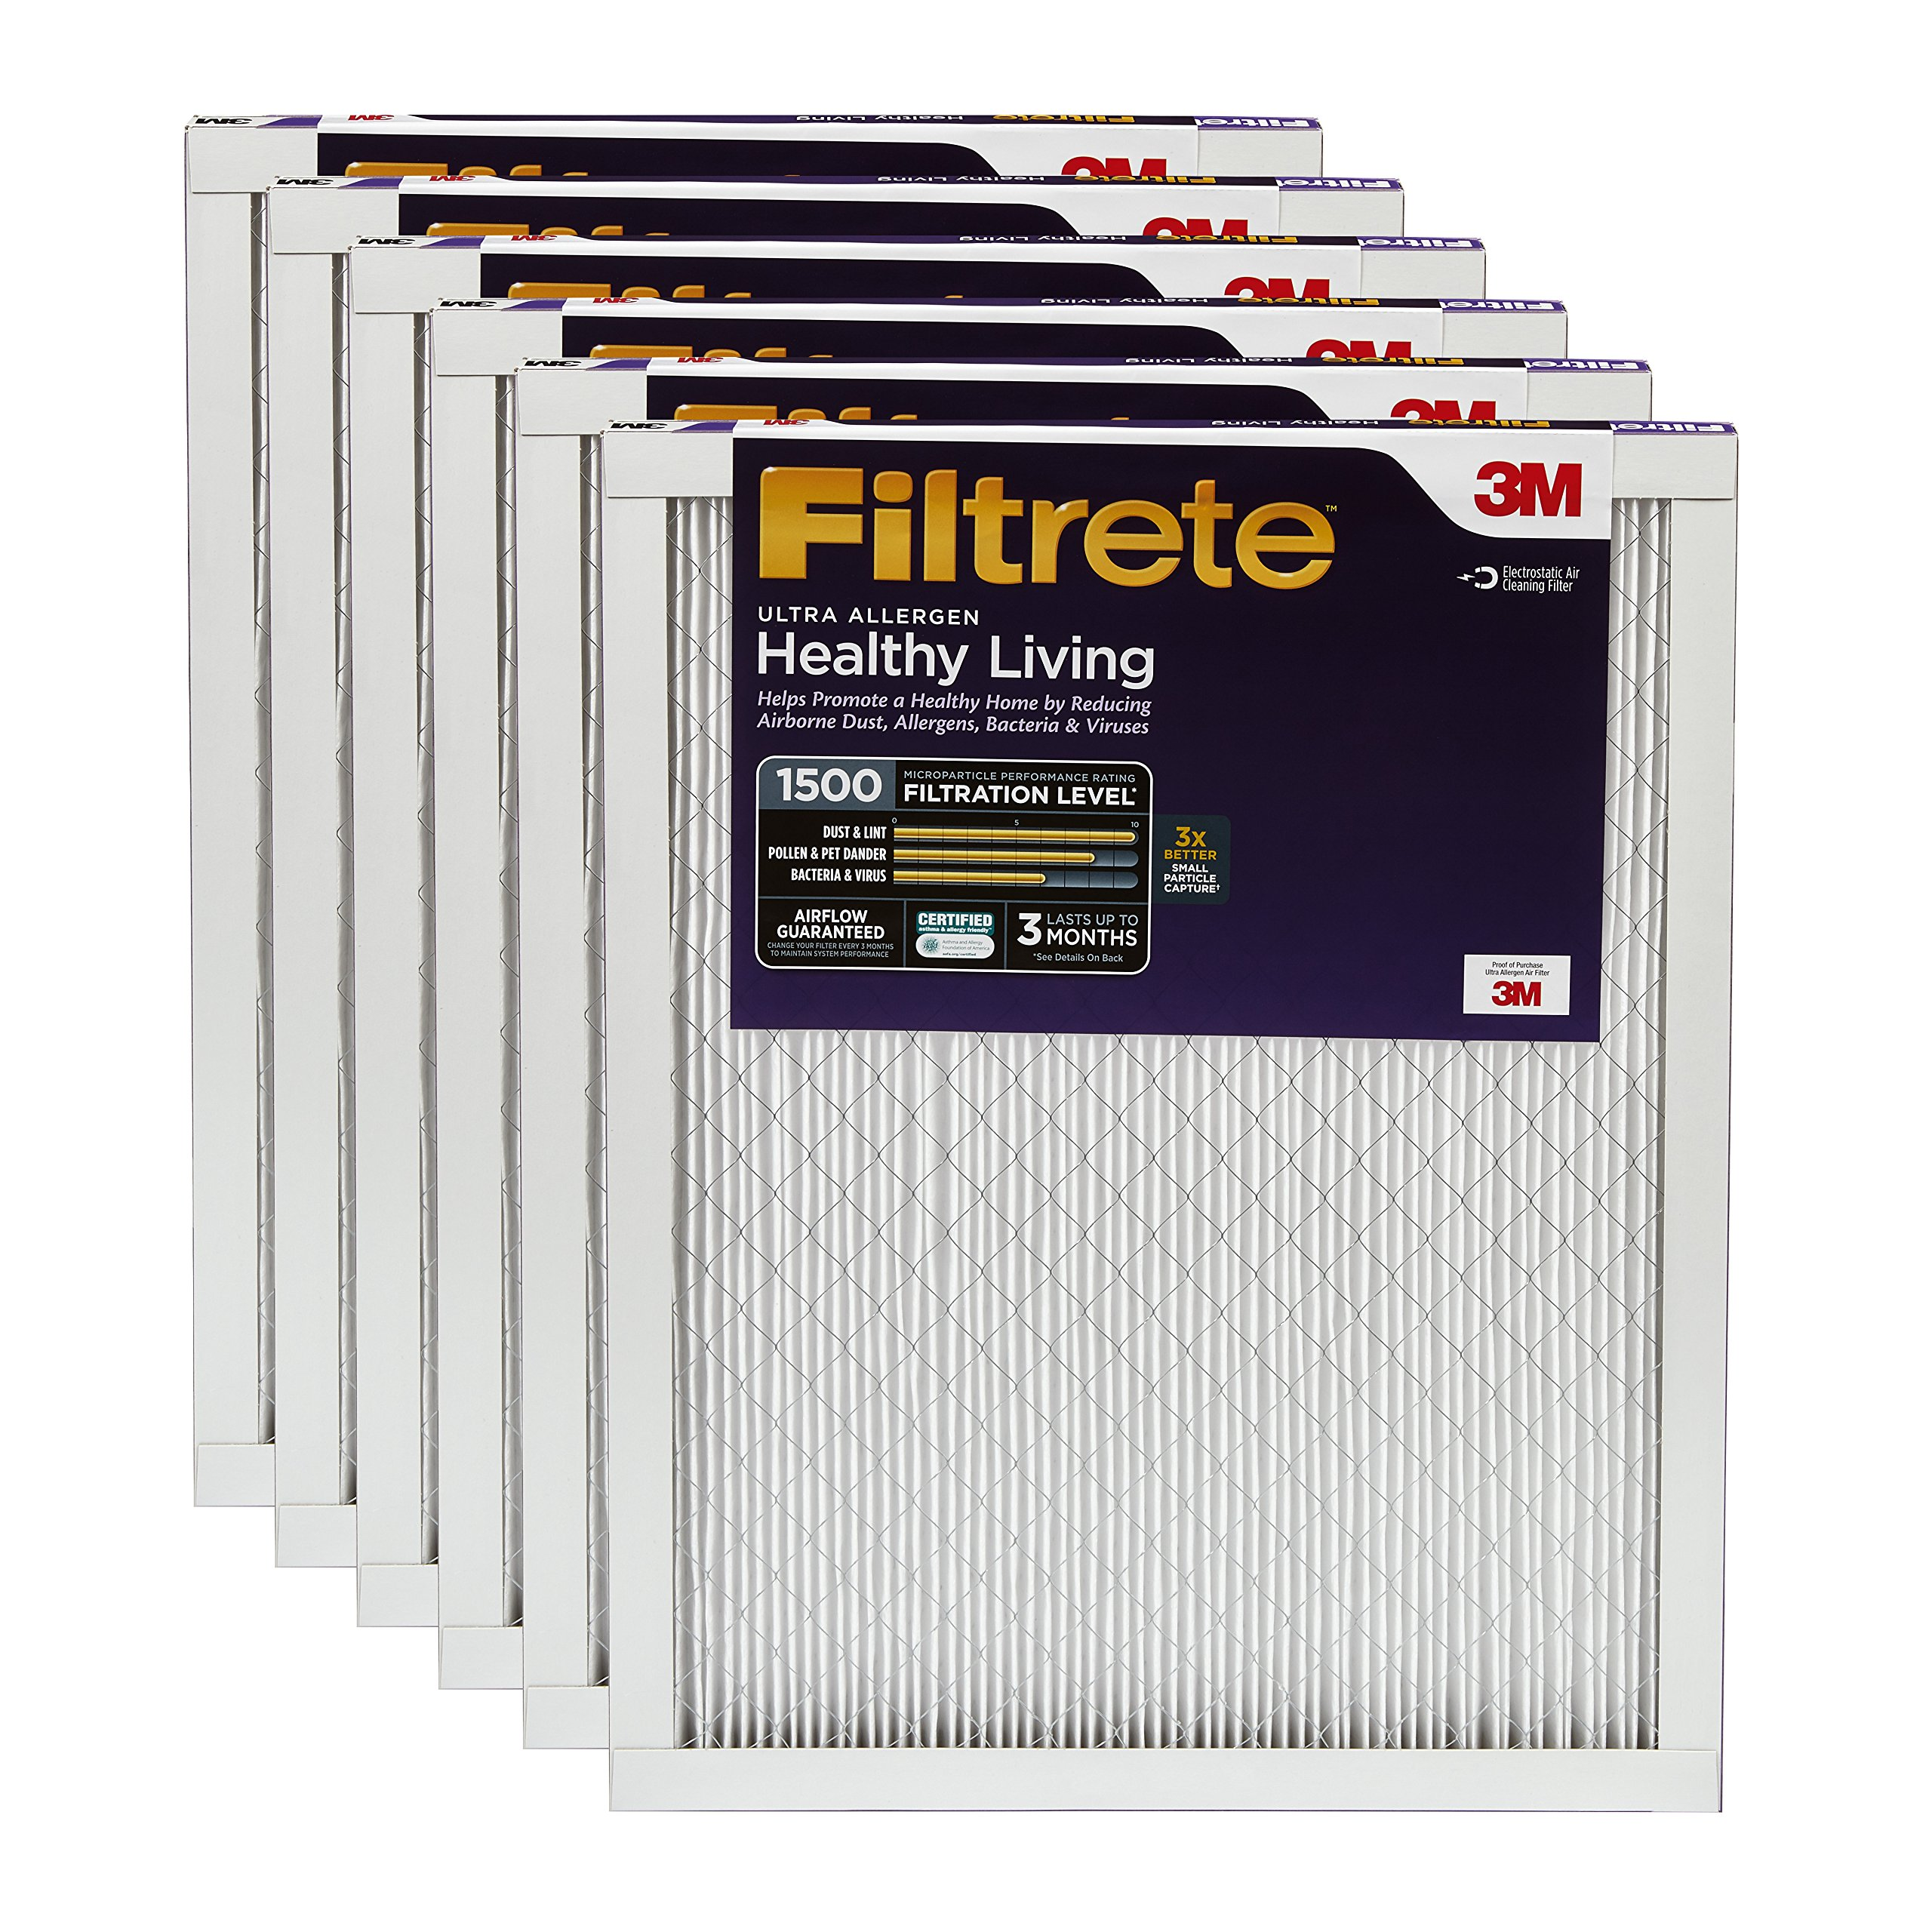 Filtrete MPR 1500 16 x 25 x 1 Healthy Living Ultra Allergen Reduction HVAC Air Filter, Guaranteed Airflow up to 90 days, Attracts Fine Inhalable Particles like Bacteria & Viruses, 6-Pack